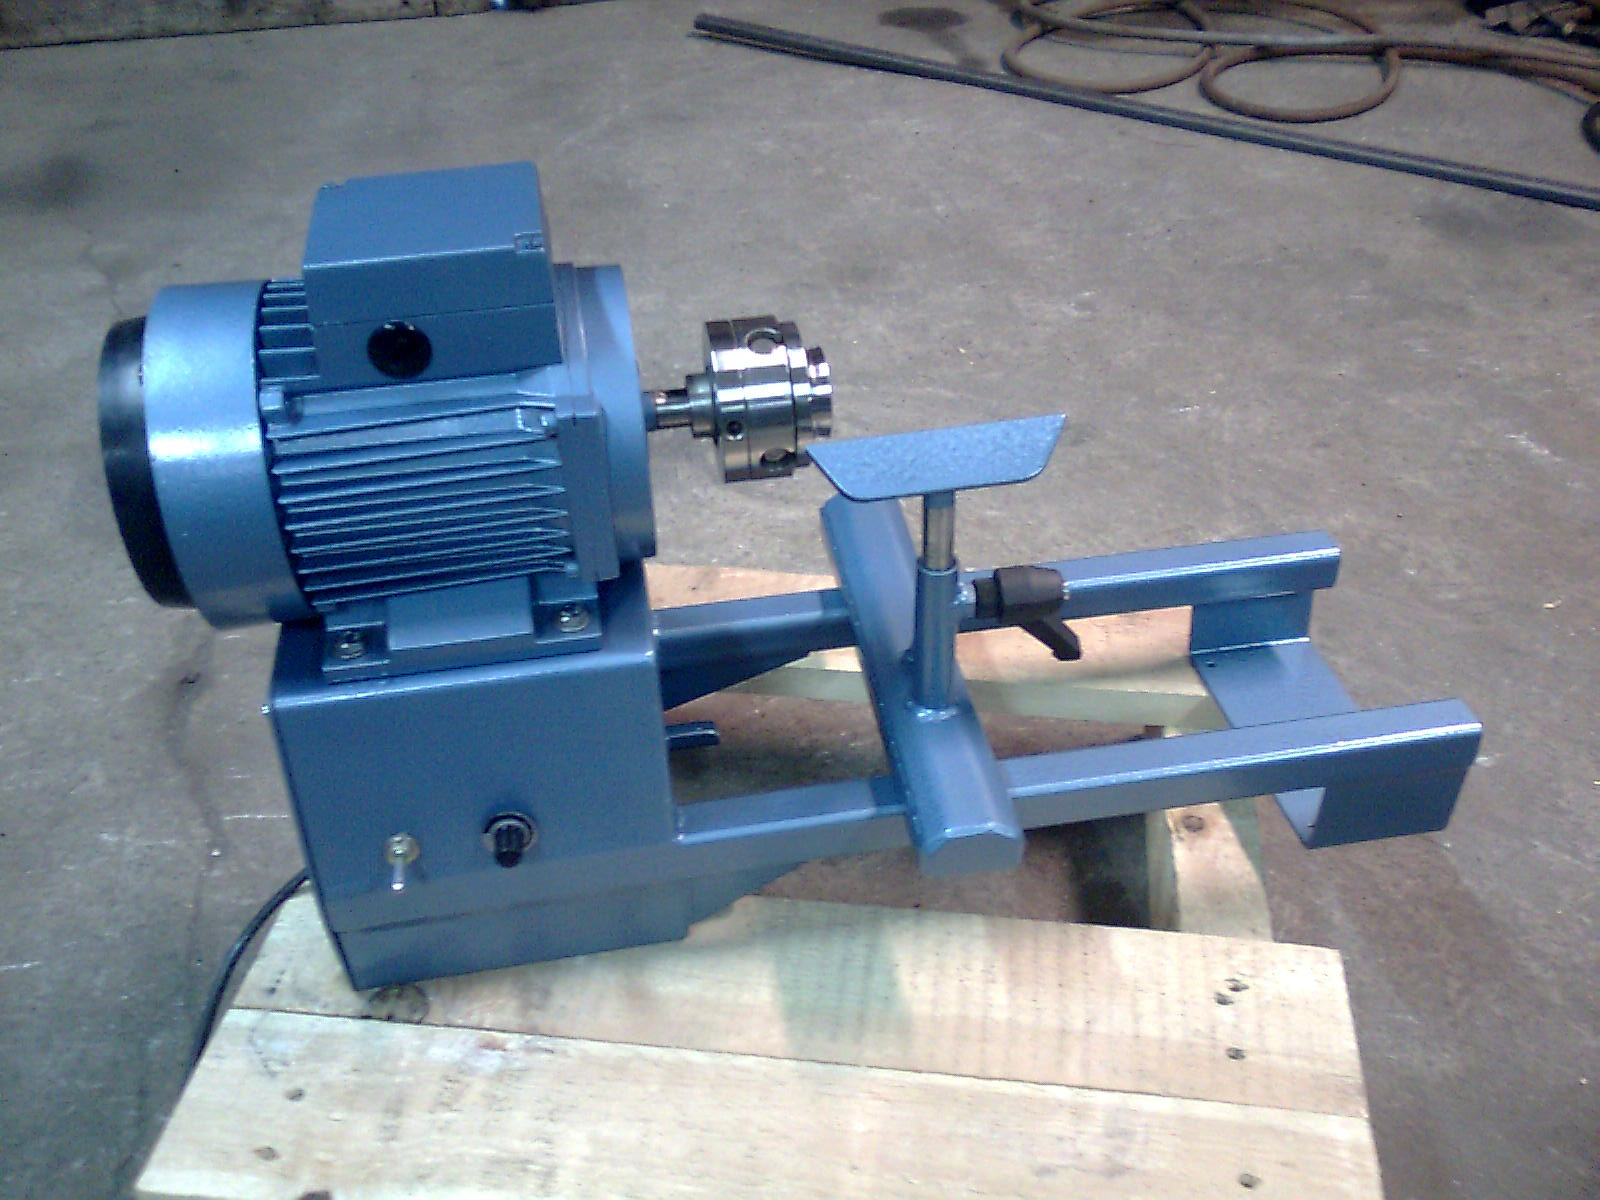 DIY Wood Lathe  Diy Wood Lathe Clublifeglobal